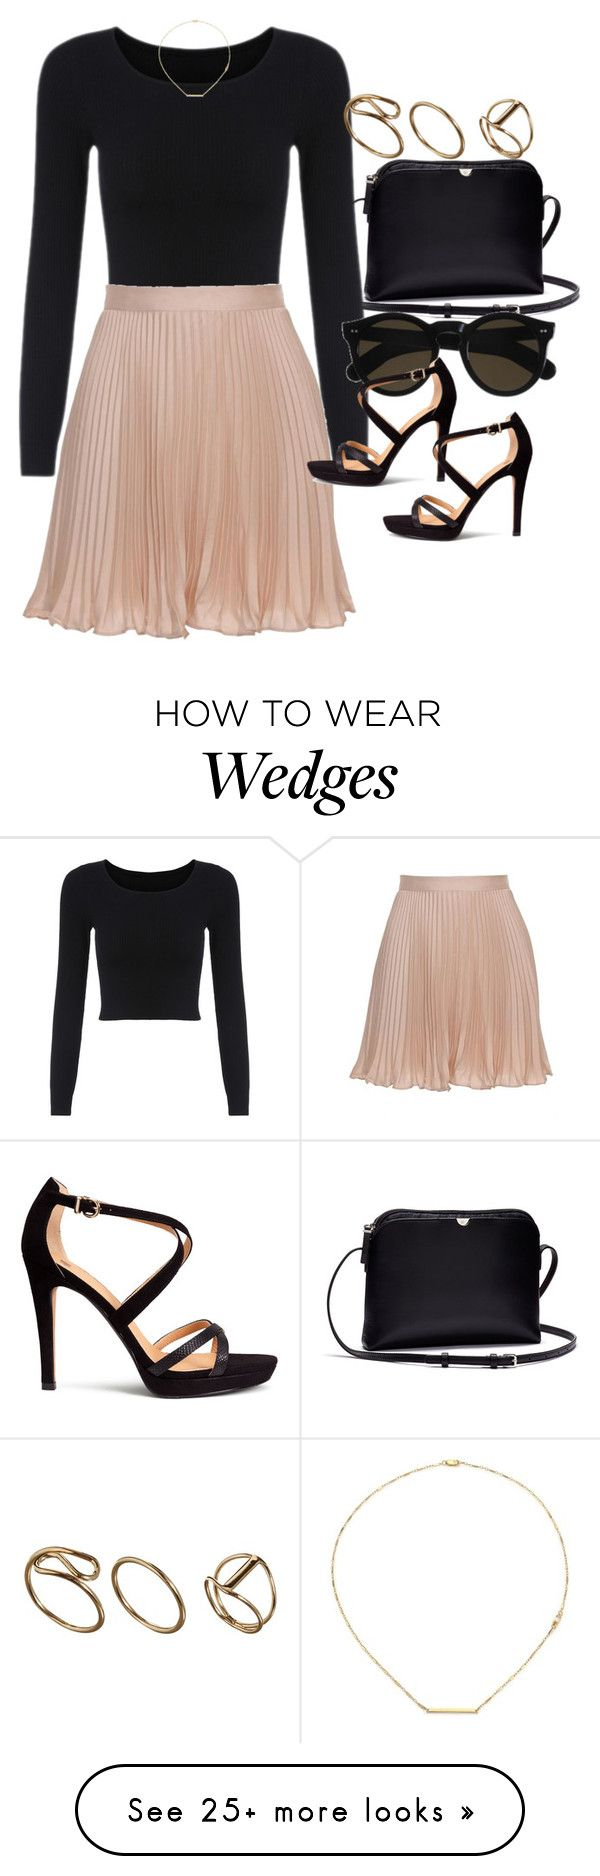 """""""Untitled #3296"""" by glitter-the-world on Polyvore featuring The Row, Club Monaco, Beau Coops, H&M and Jennifer Zeuner"""